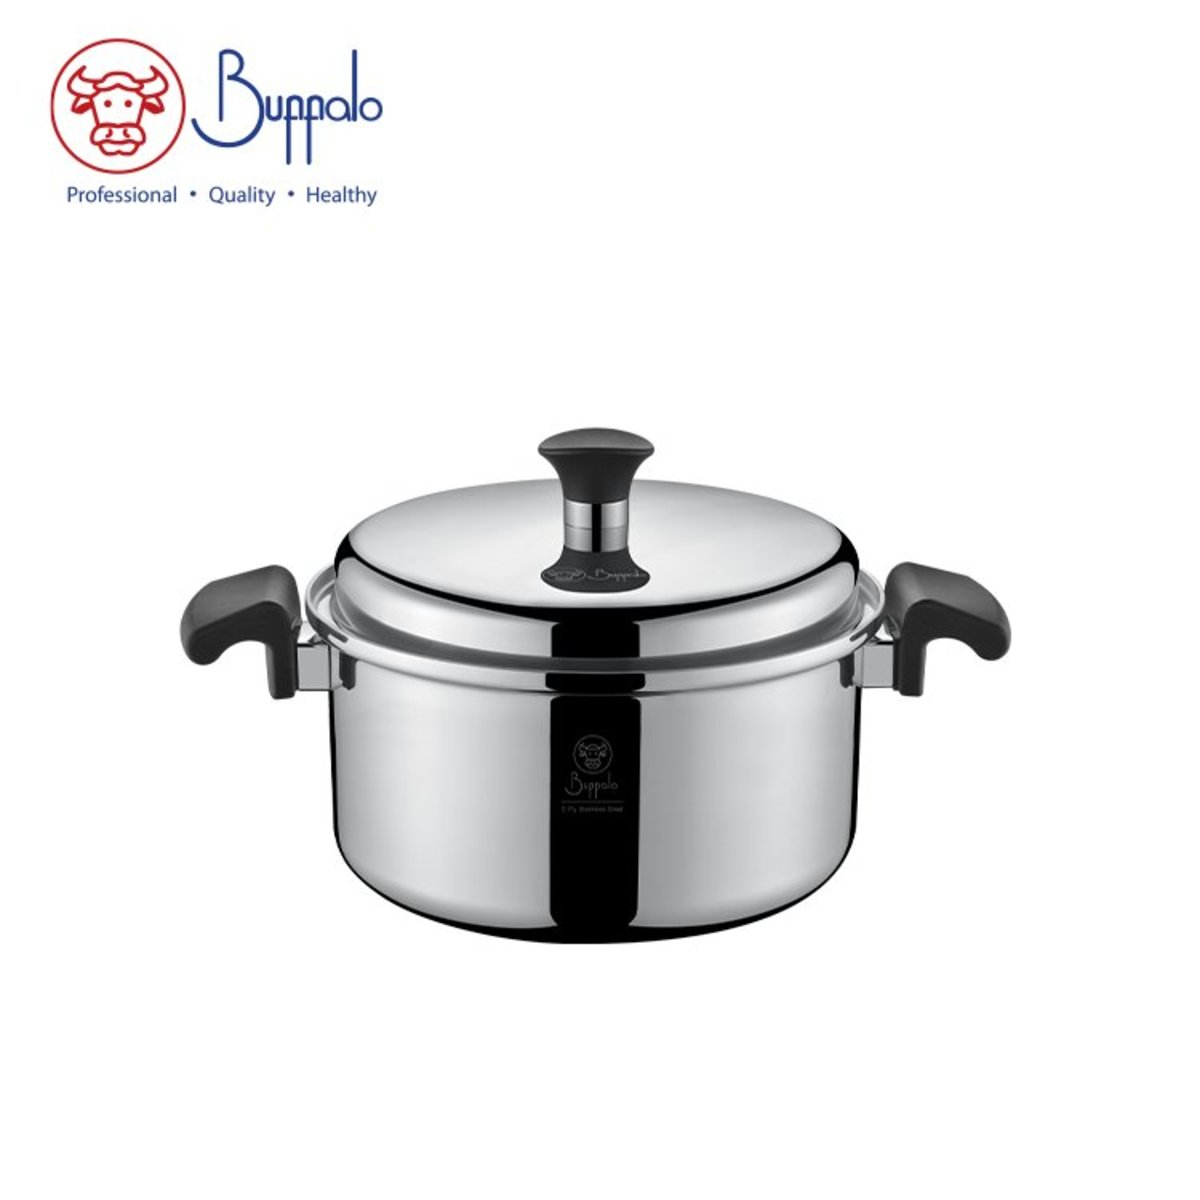 Buffalo Elite Cook 22CM 5-Ply  Stainless Steel Stockpot (50522S)